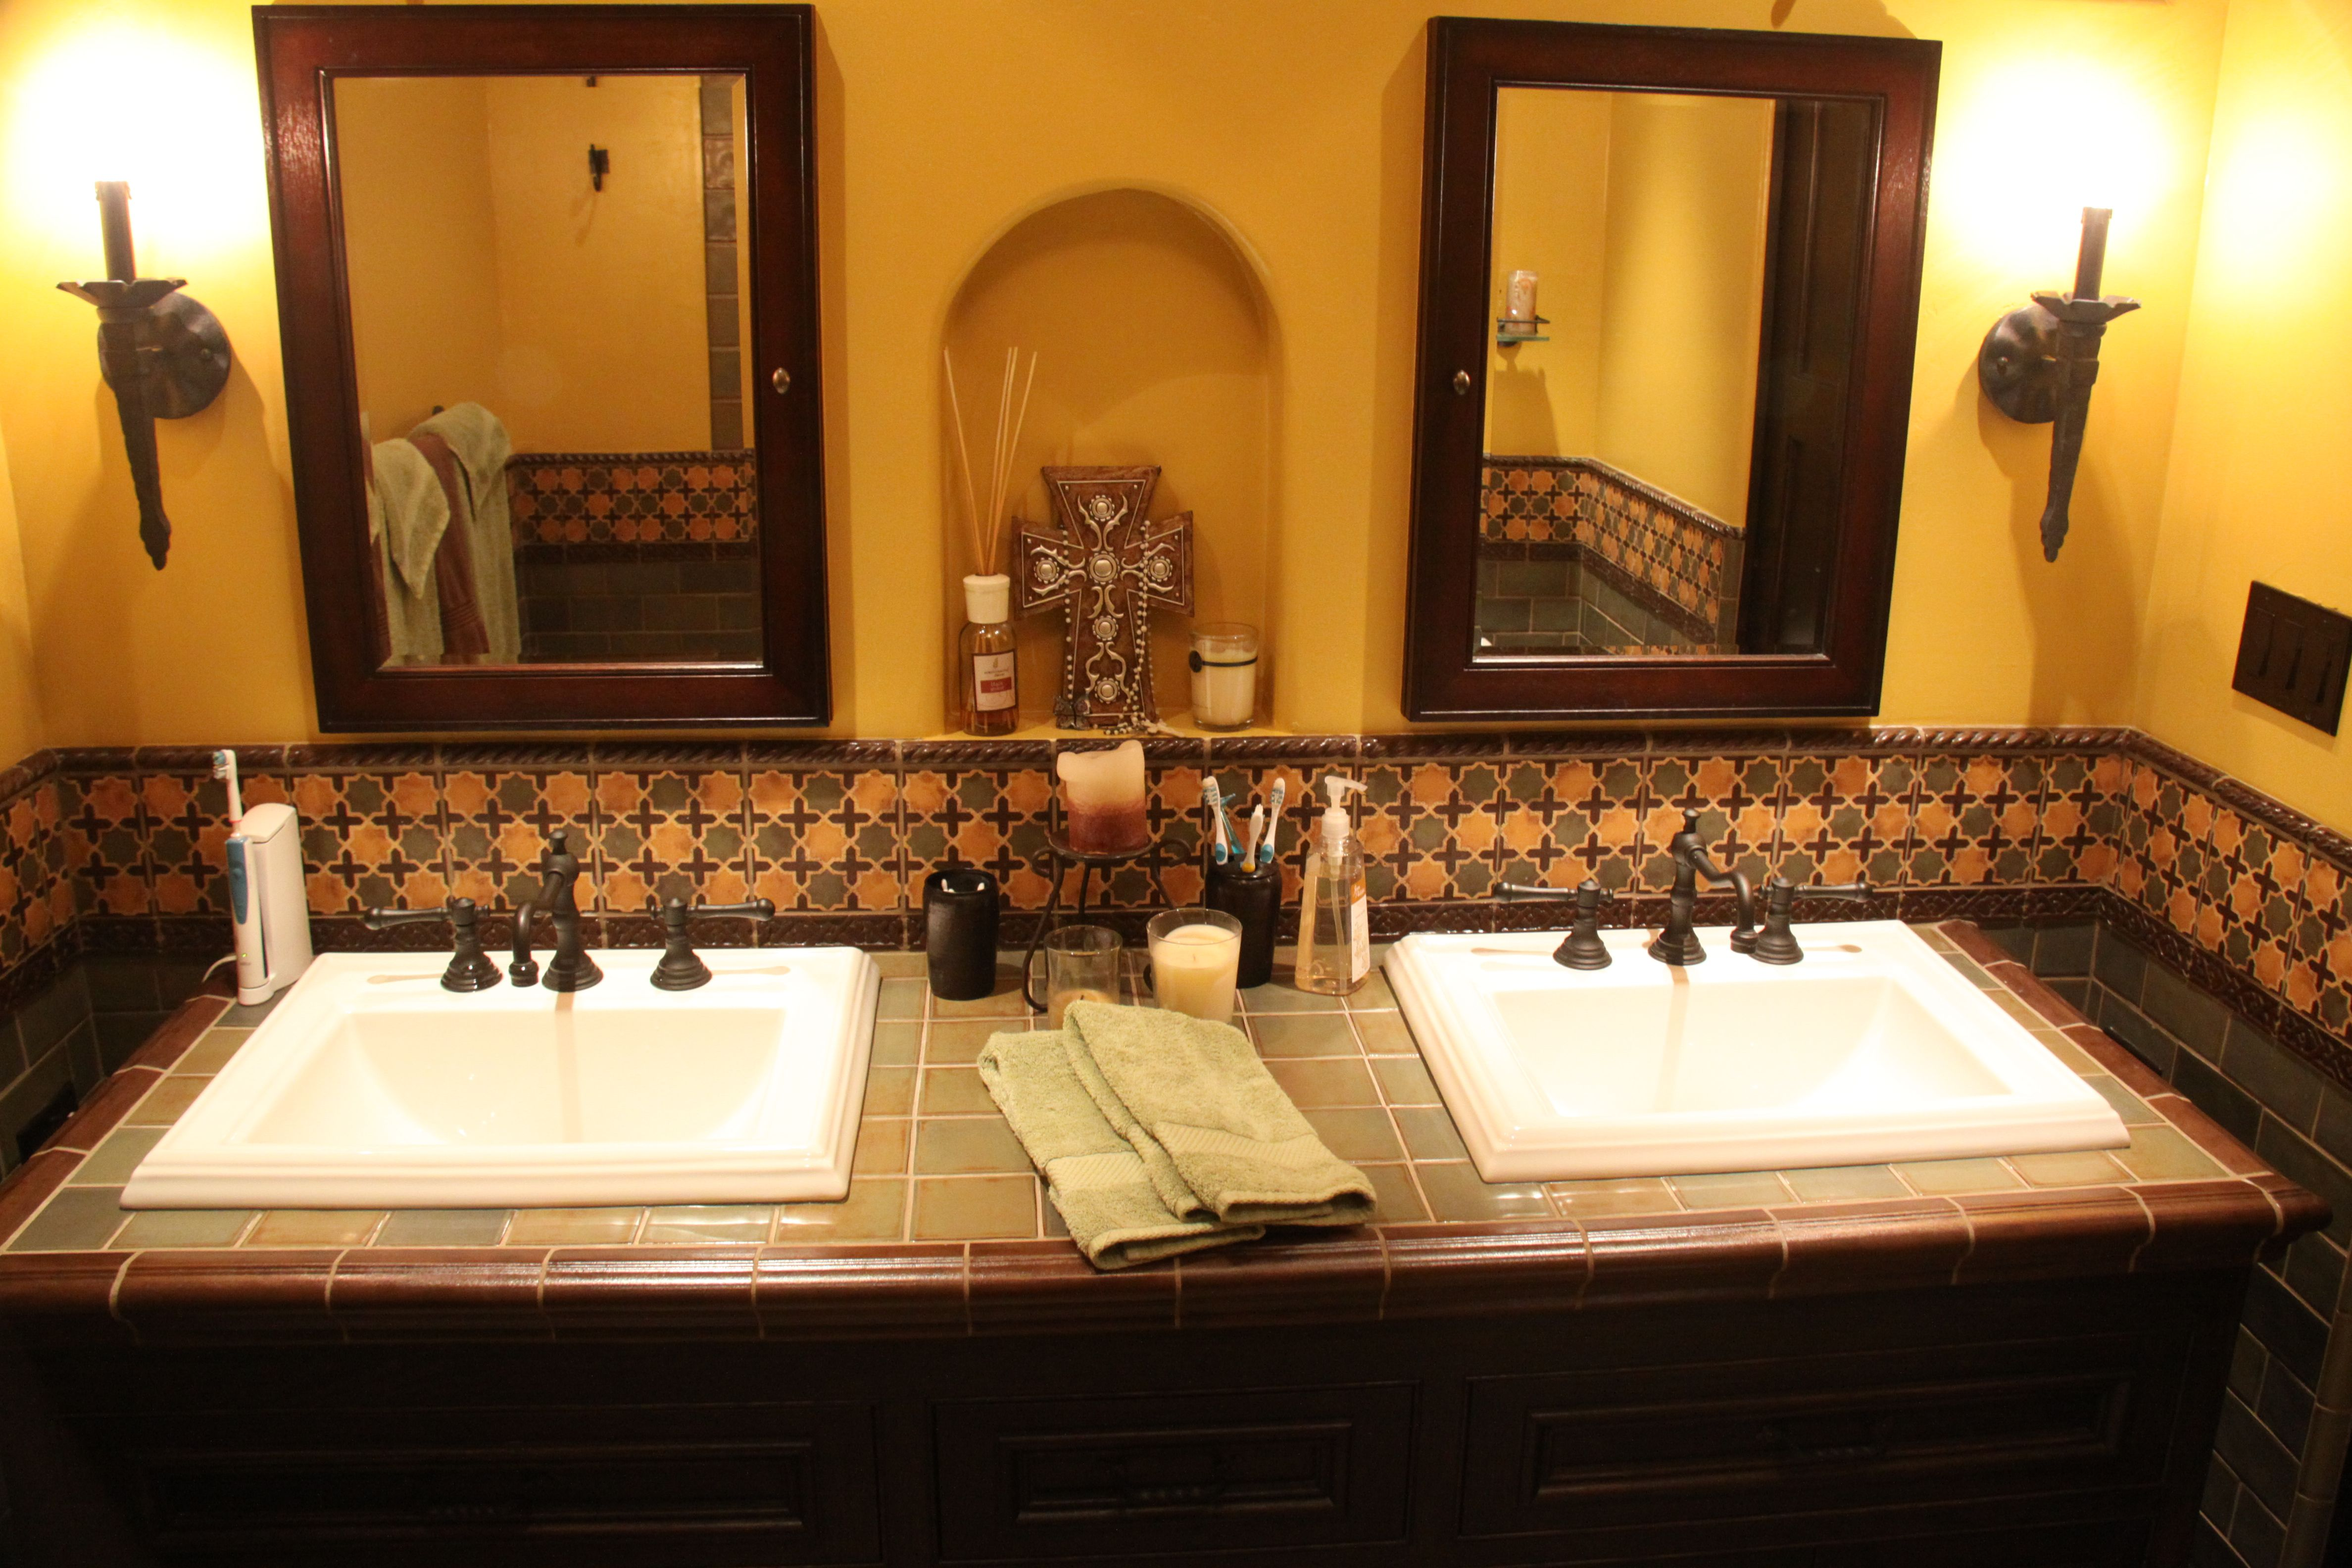 Bathroom In Spanish Spanish Inspired Bathrooms Spanish Style Bathrooms On Pinterest